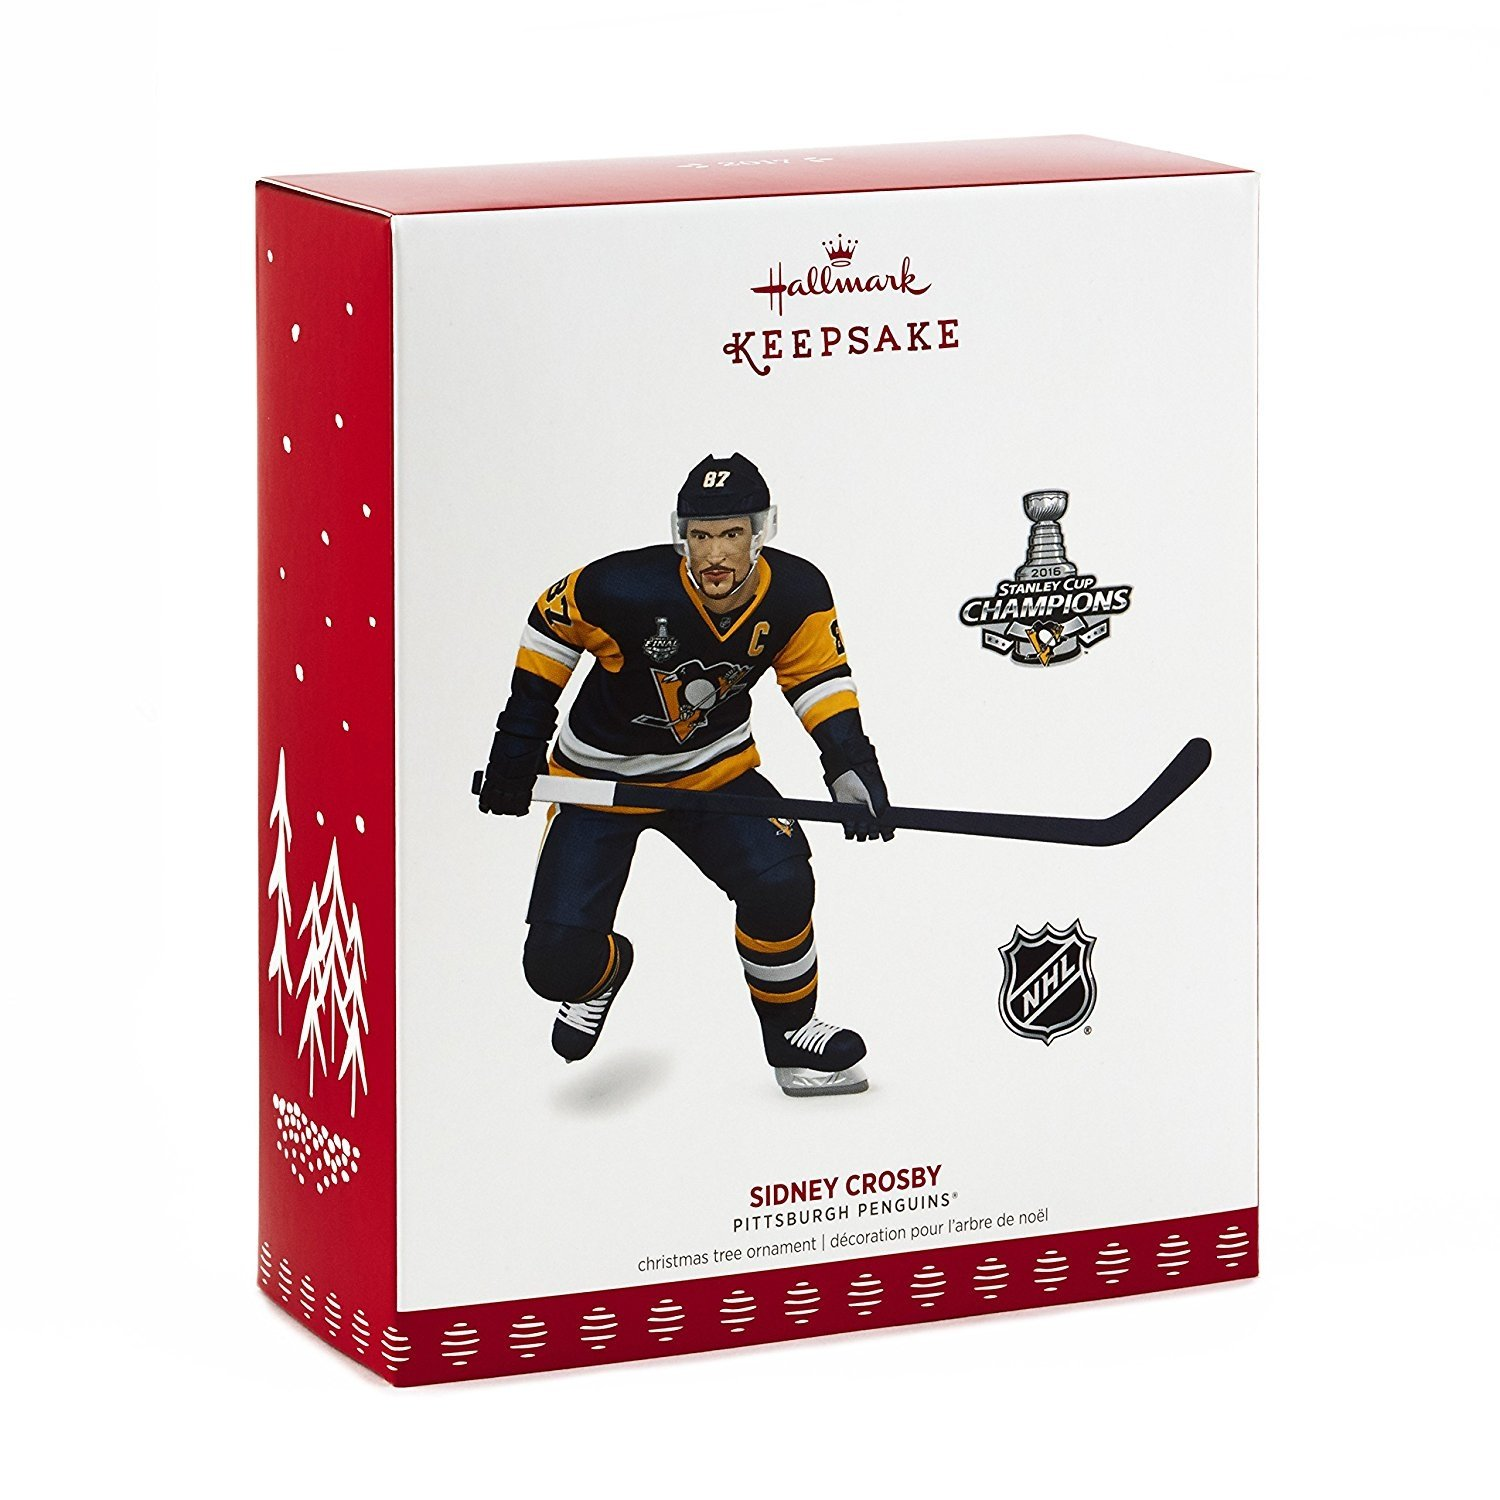 Hallmark Nhl Pittsburgh Penguins Sidney Crosby Keepsake Christmas Ornament